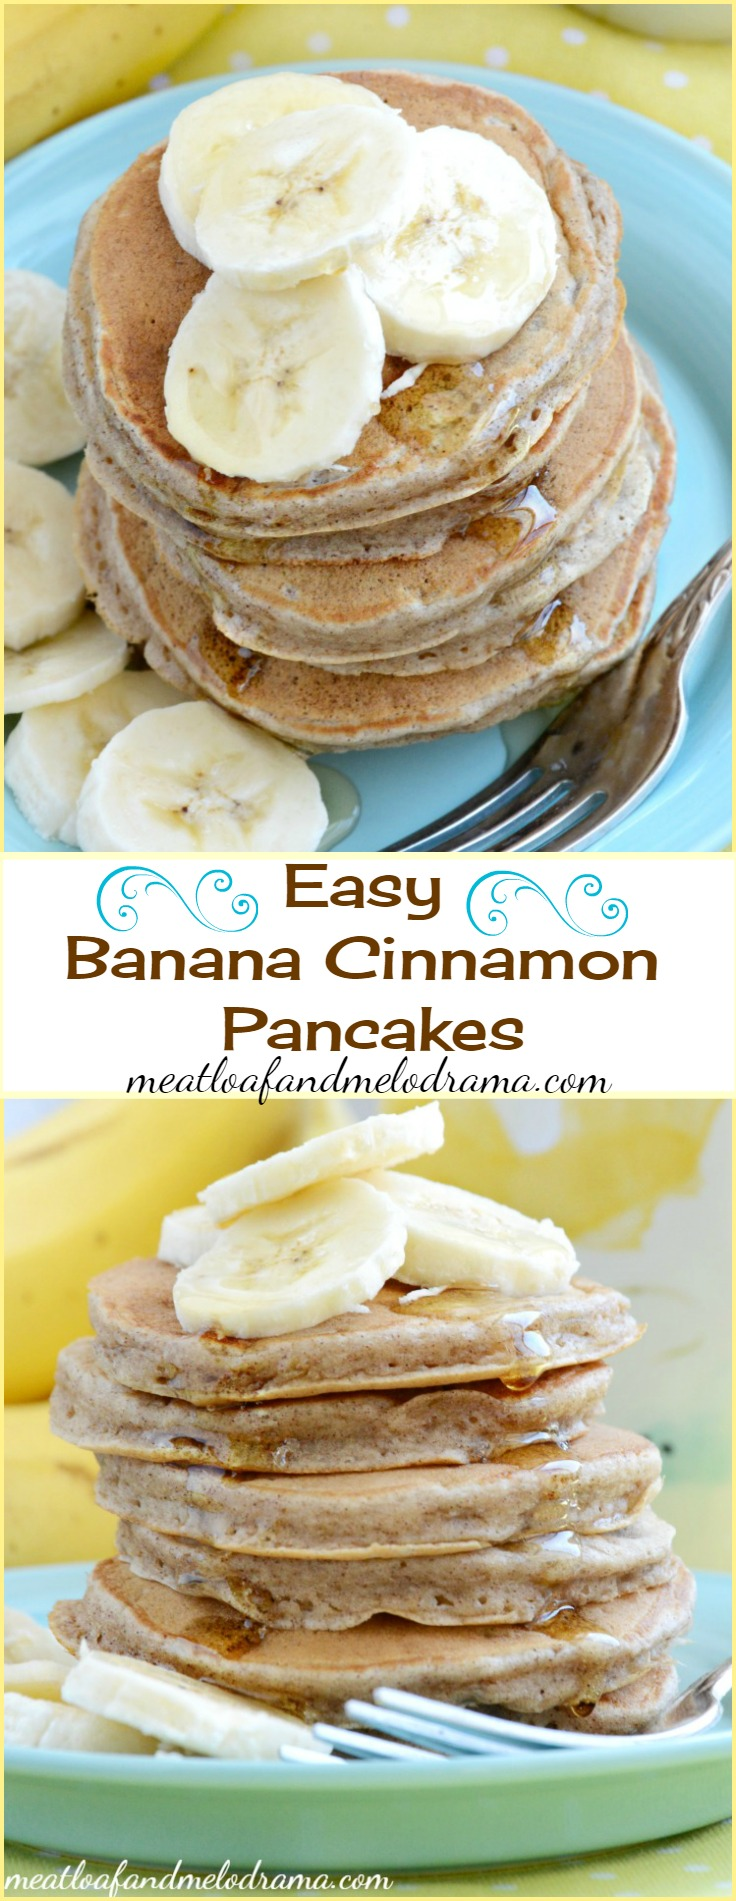 Easy Banana Cinnamon Pancakes